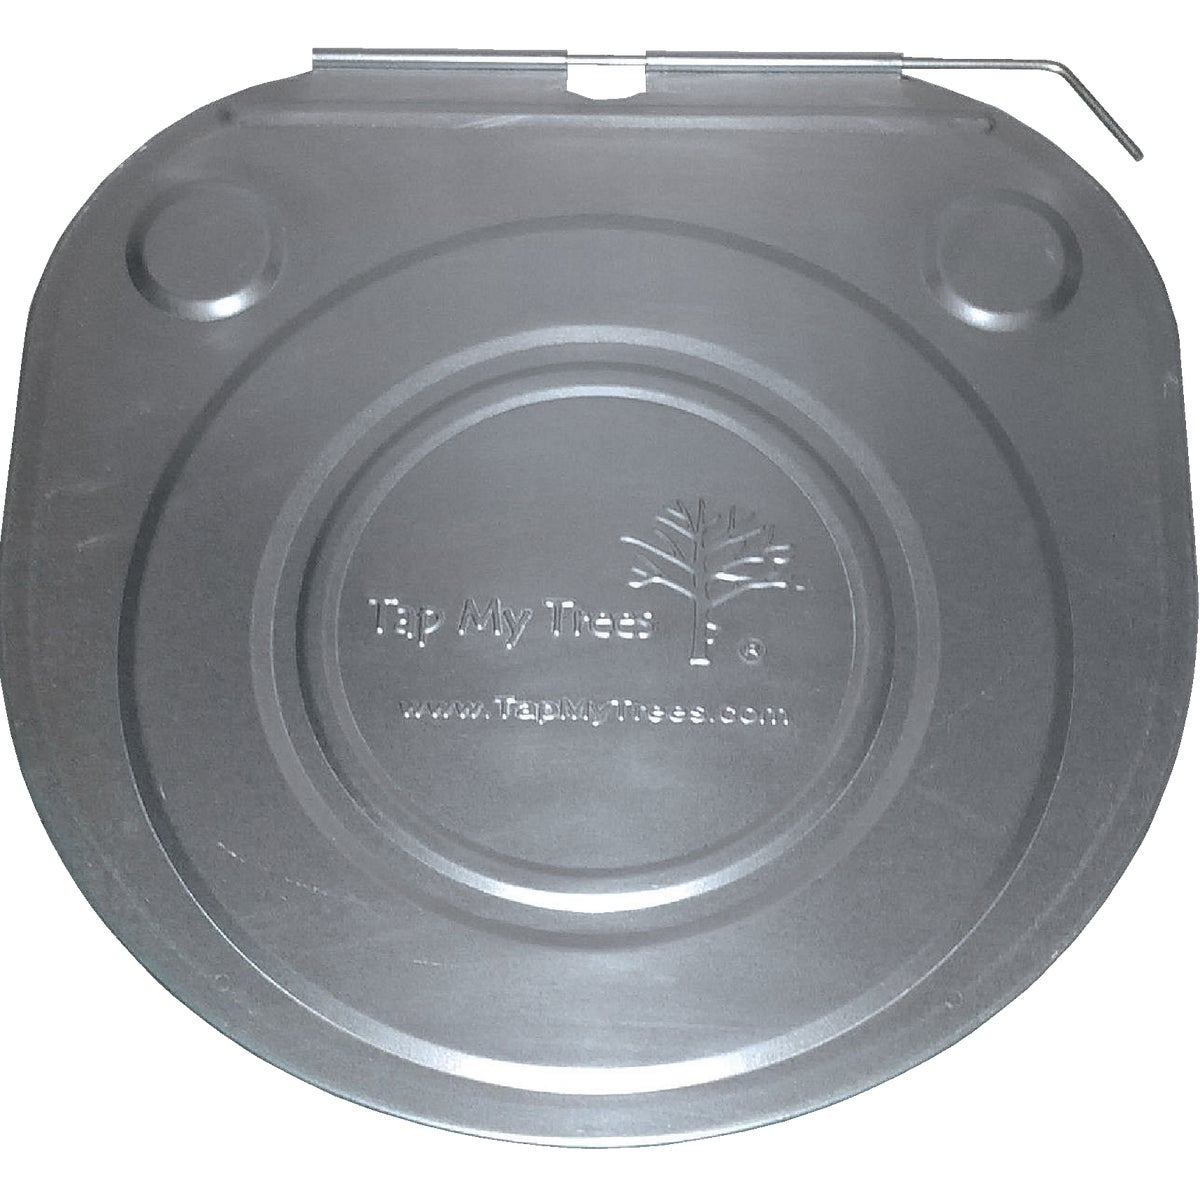 2G METAL BUCKET LID